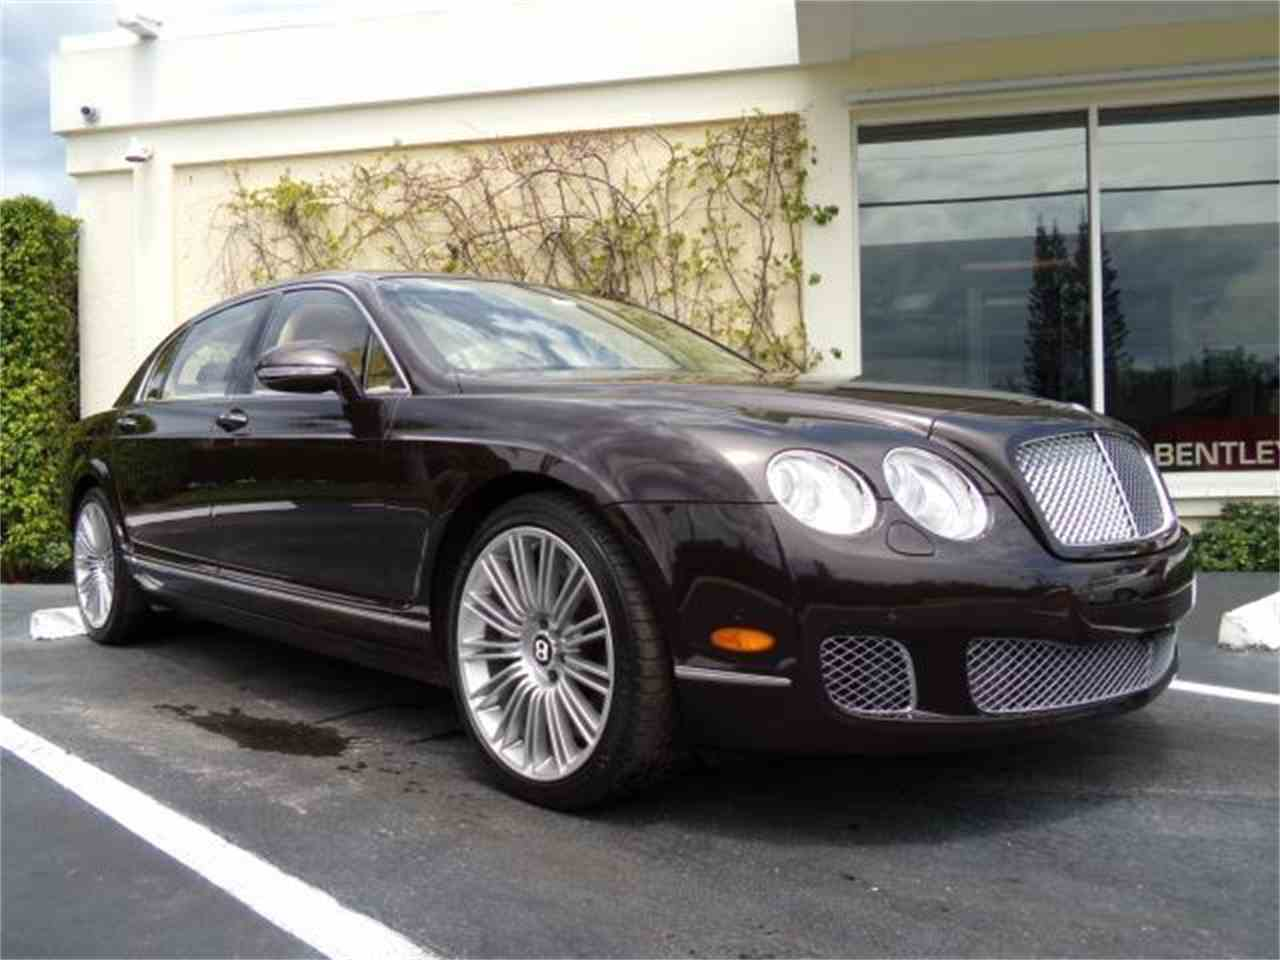 auto arabia bentley spur flying the most continental car news world comfortable in